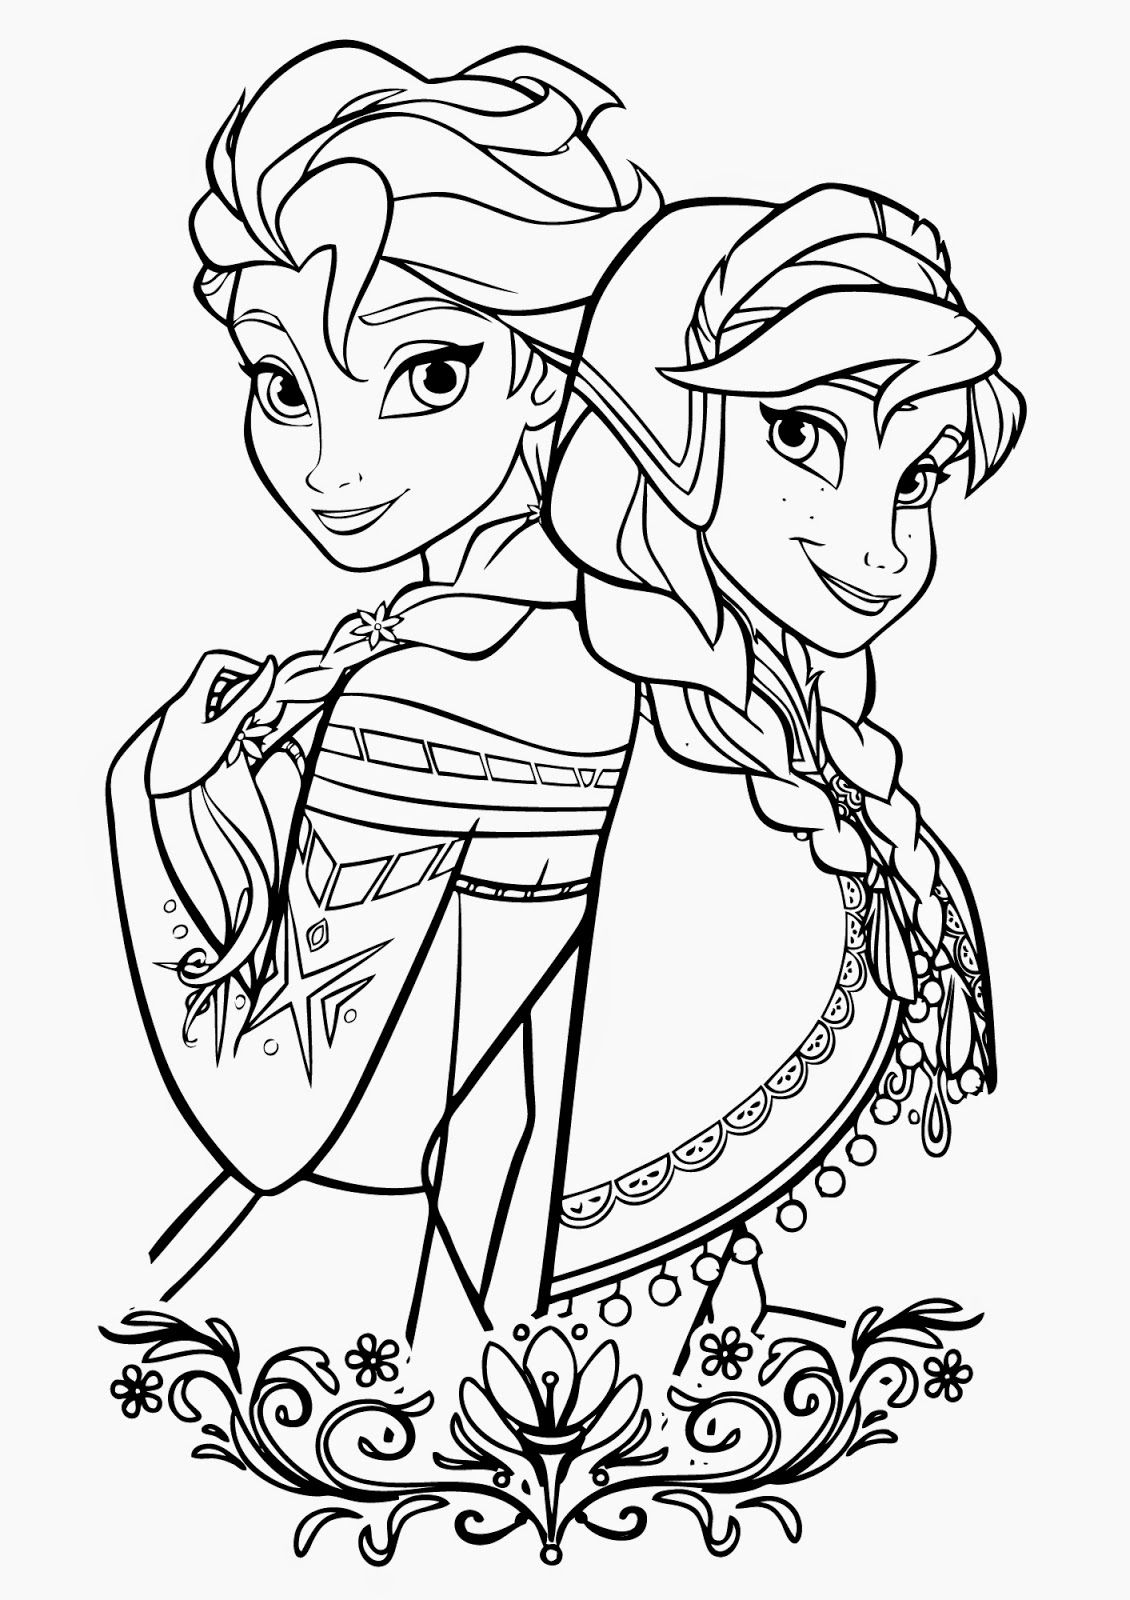 Coloring pages for frozen printable - Frozen Coloring Pages 18 More